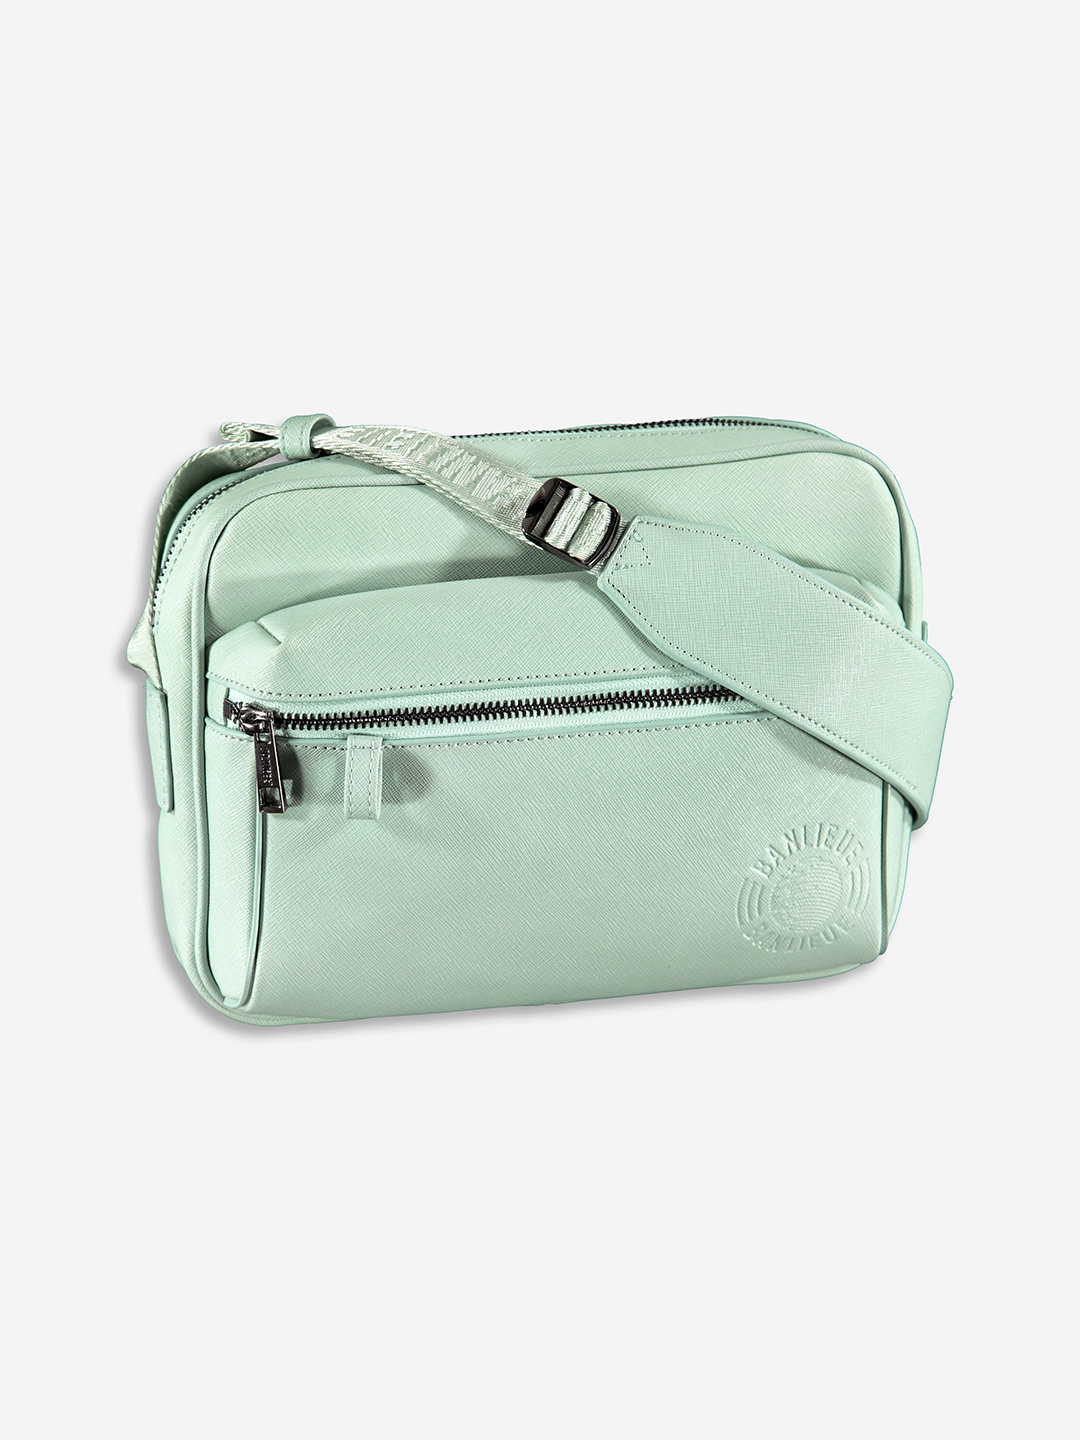 CROSSBODY BAG LIGHT BLUE